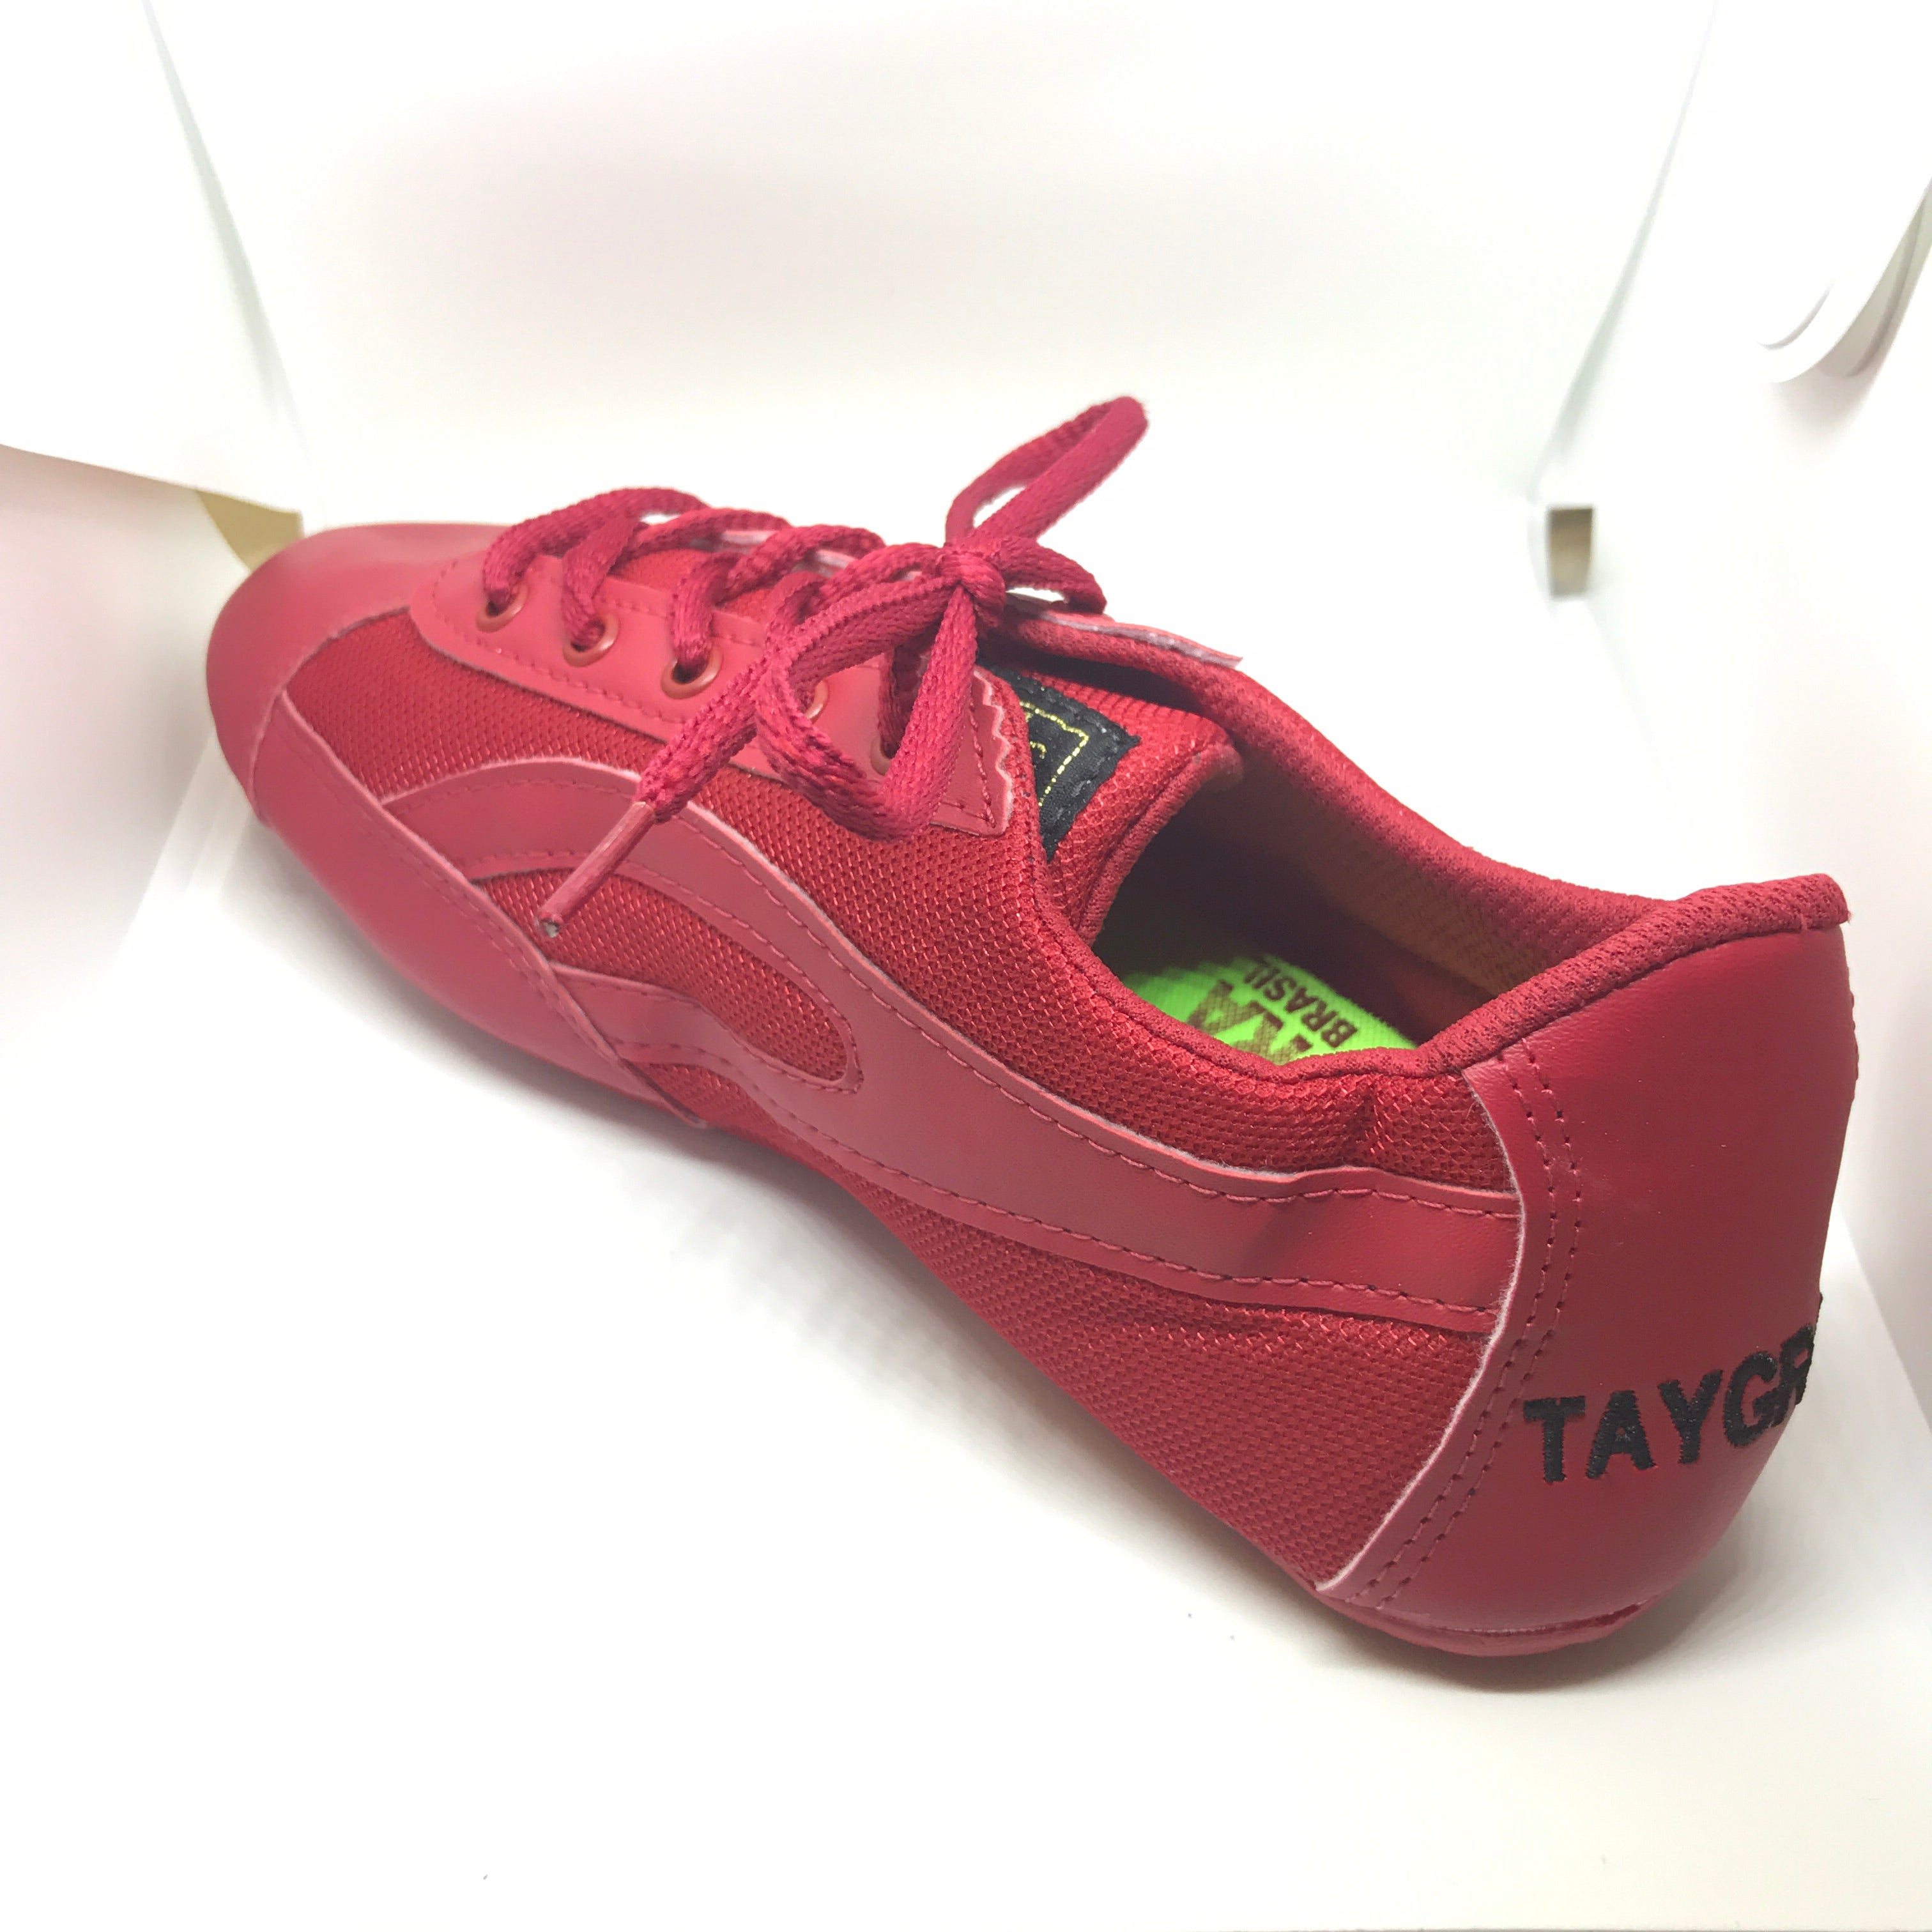 Red Sole Taygra Shoes for Men and Women